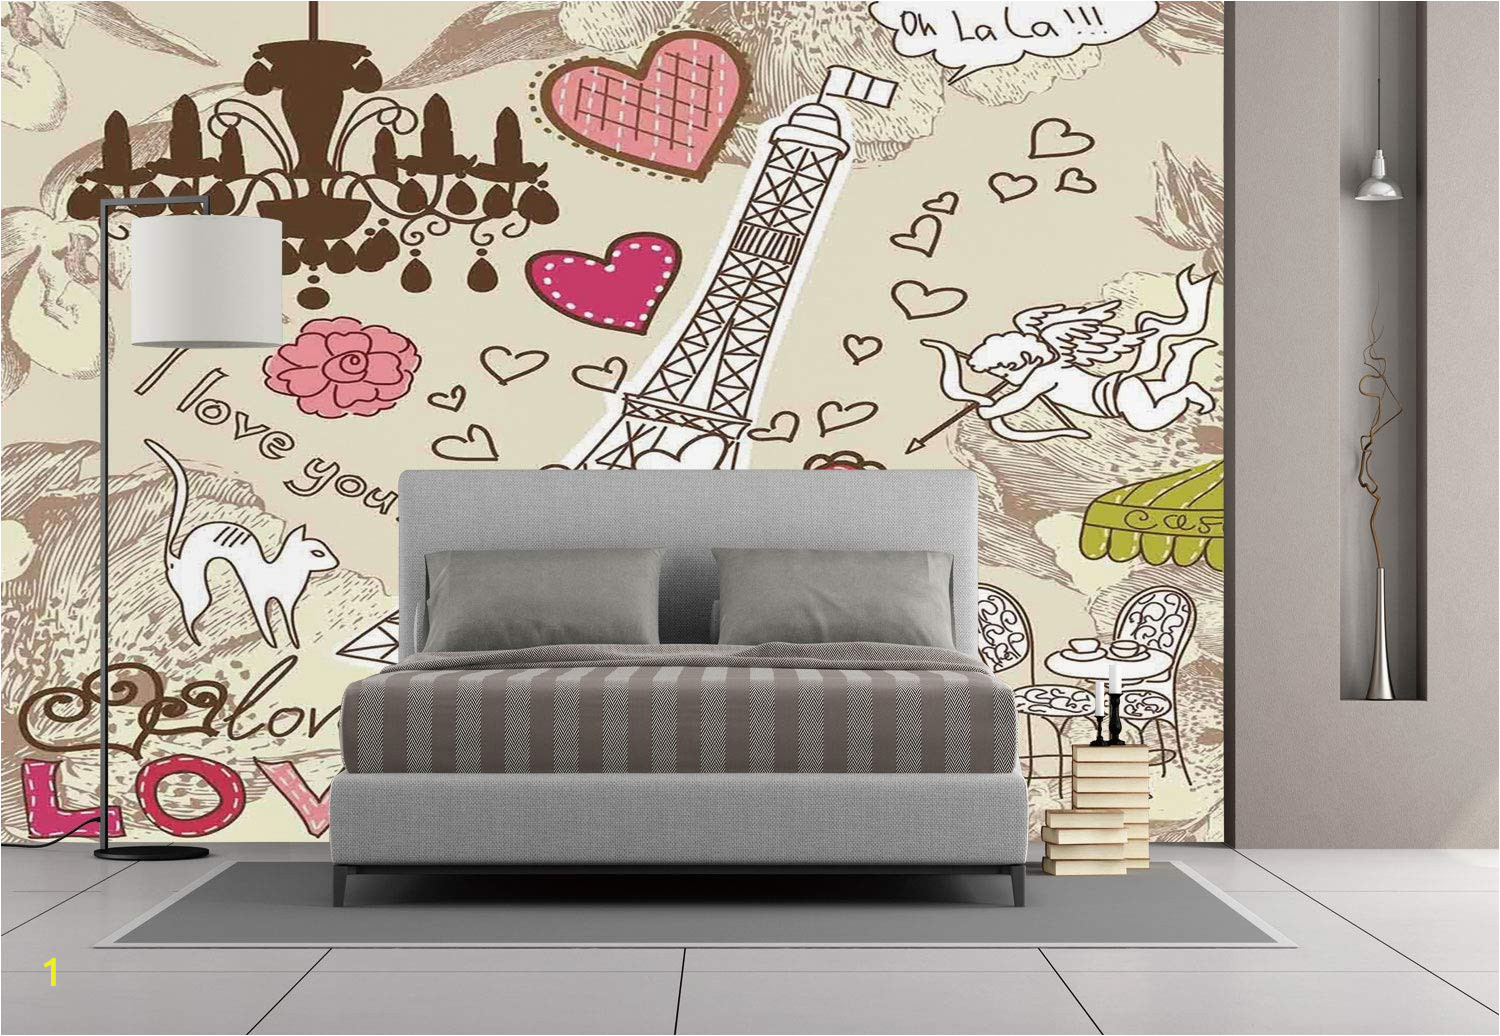 Large Wall Mural Stickers Amazon Wall Mural Sticker [ Paris Decor Doodles